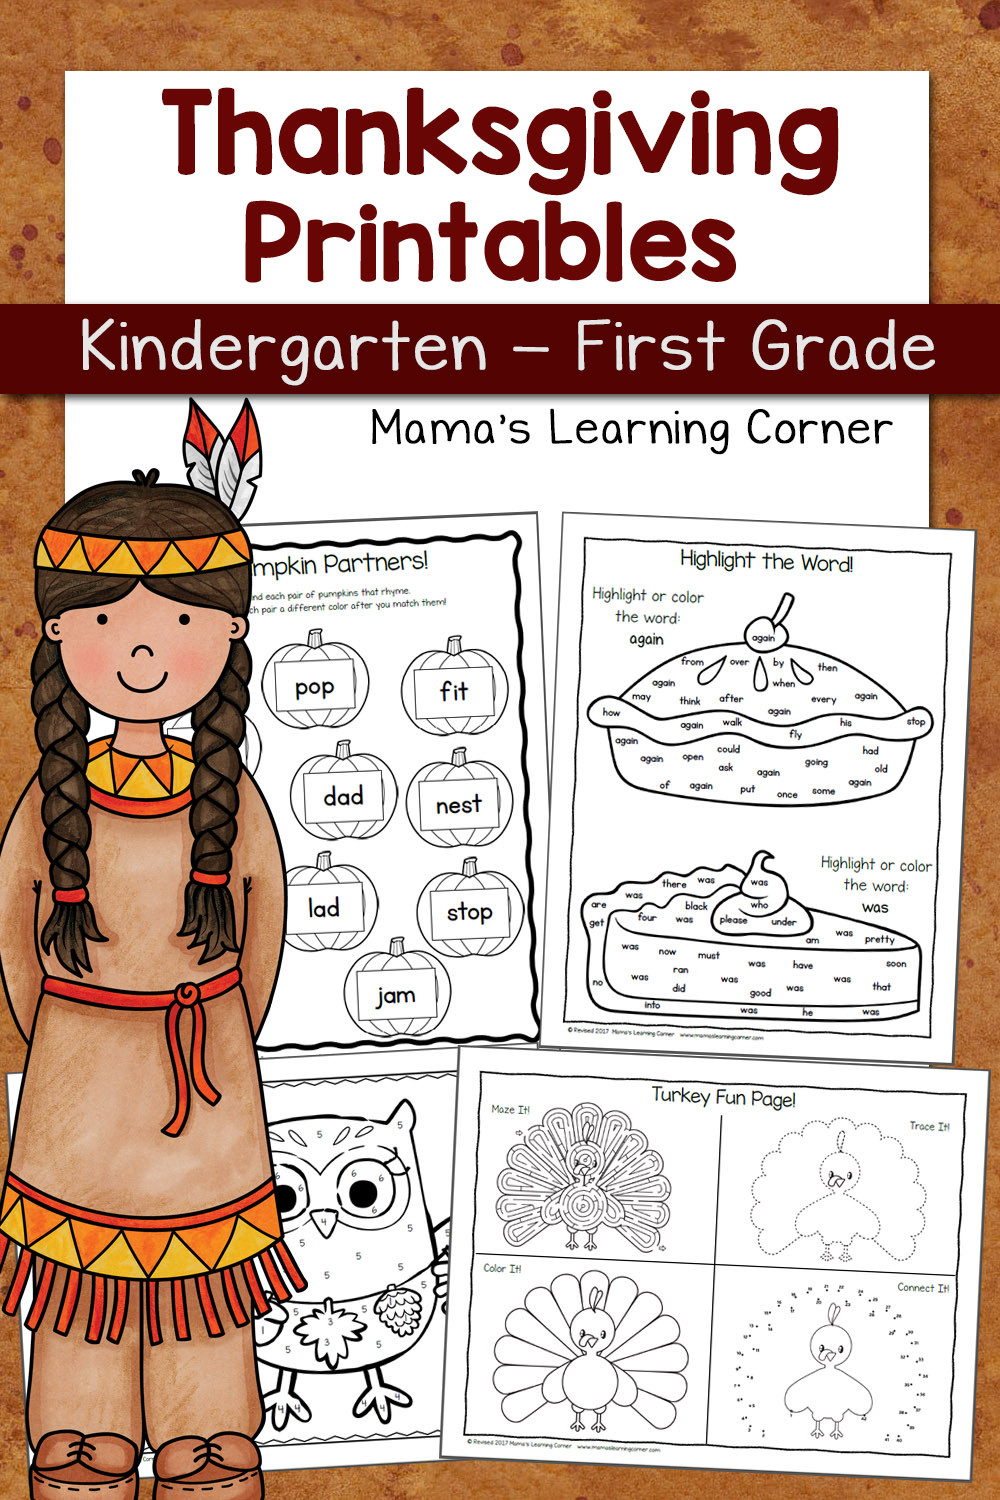 1st Grade Thanksgiving Worksheets Thanksgiving Worksheets for Kindergarten and First Grade